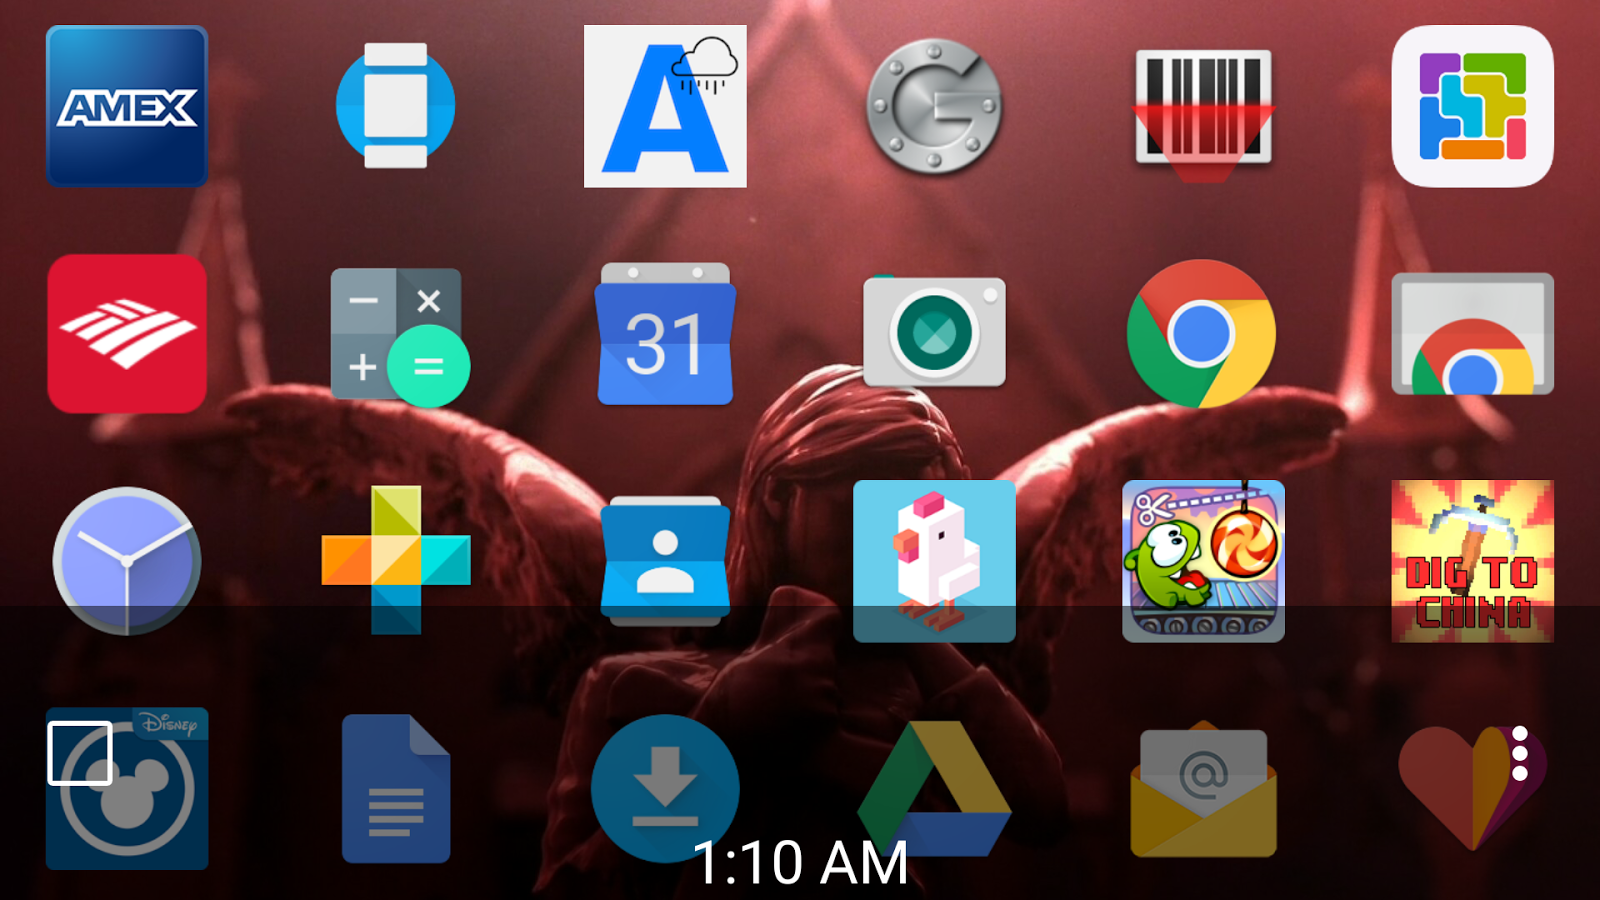 Apk 6tv: Simple TV Launcher 1.5.2 APK Download